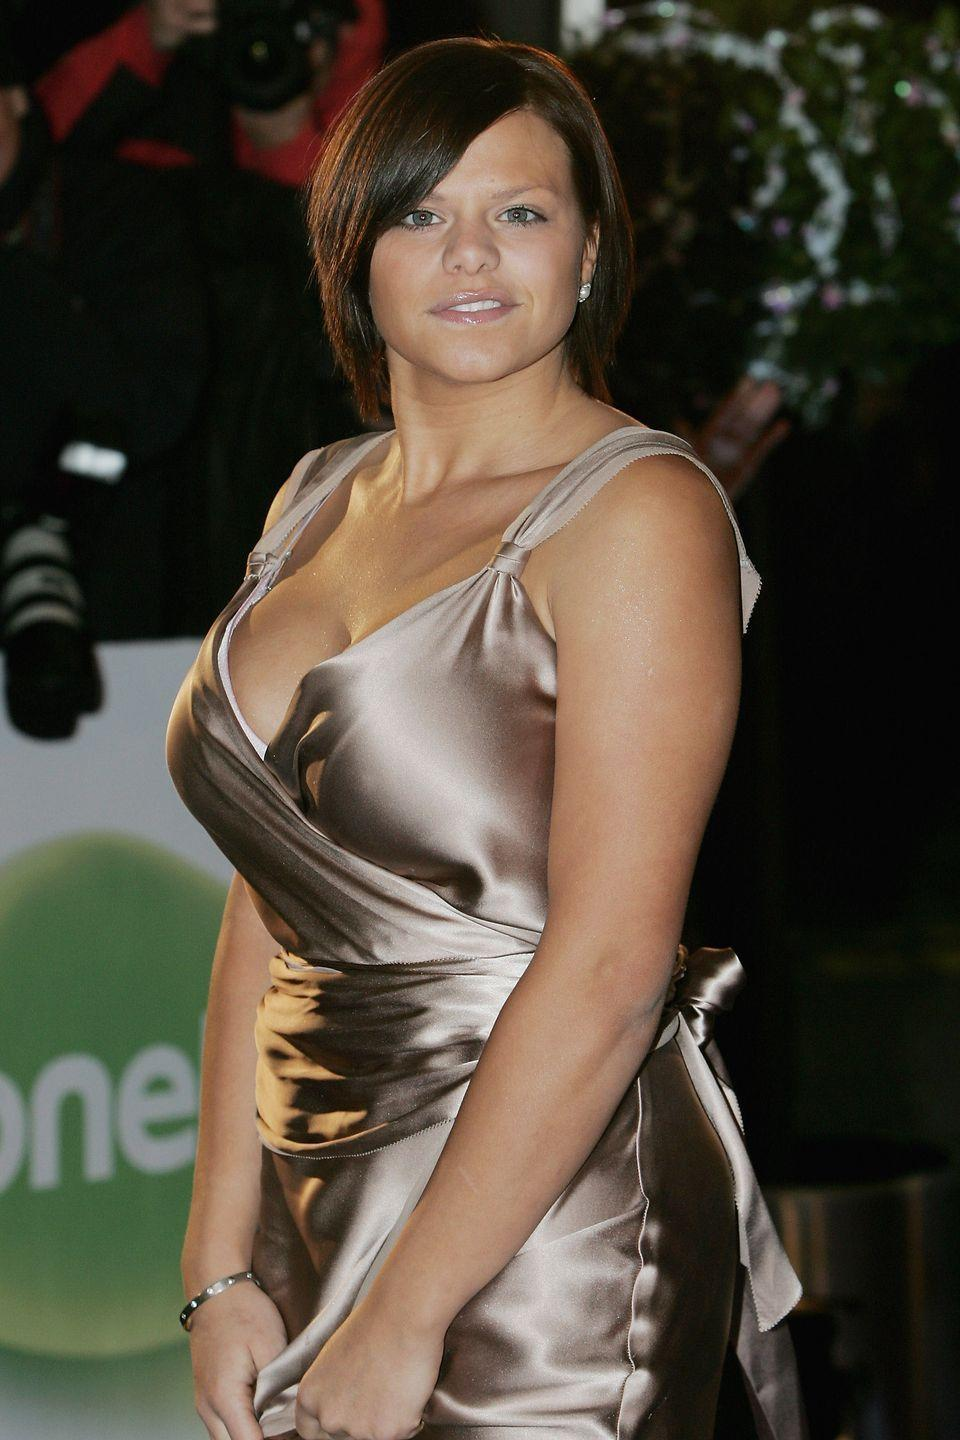 <p>The UK's first TV reality star to go big-time, Jade Goody was raised up only to be brought crushing down. When she was first cast to star in Big Brother, she was just 20 and from a tough working class background with dreams of a better future. At first, she was ridiculed for both her appearance and intellect; she was compared to a pig and vilified for how she spoke and looked. The press and public, as fickle as they are, then switched tact once details of her difficult background emerged and she was lauded for her authenticity and candour. Following a racist incident involving Shilpa Shetty on 2007 Big Brother, Goody's image was destroyed and she once again became a figure of public hate. She died two years later of cancer, still reeling from a brutal life filmed on camera. Many of us watched her fall.</p>